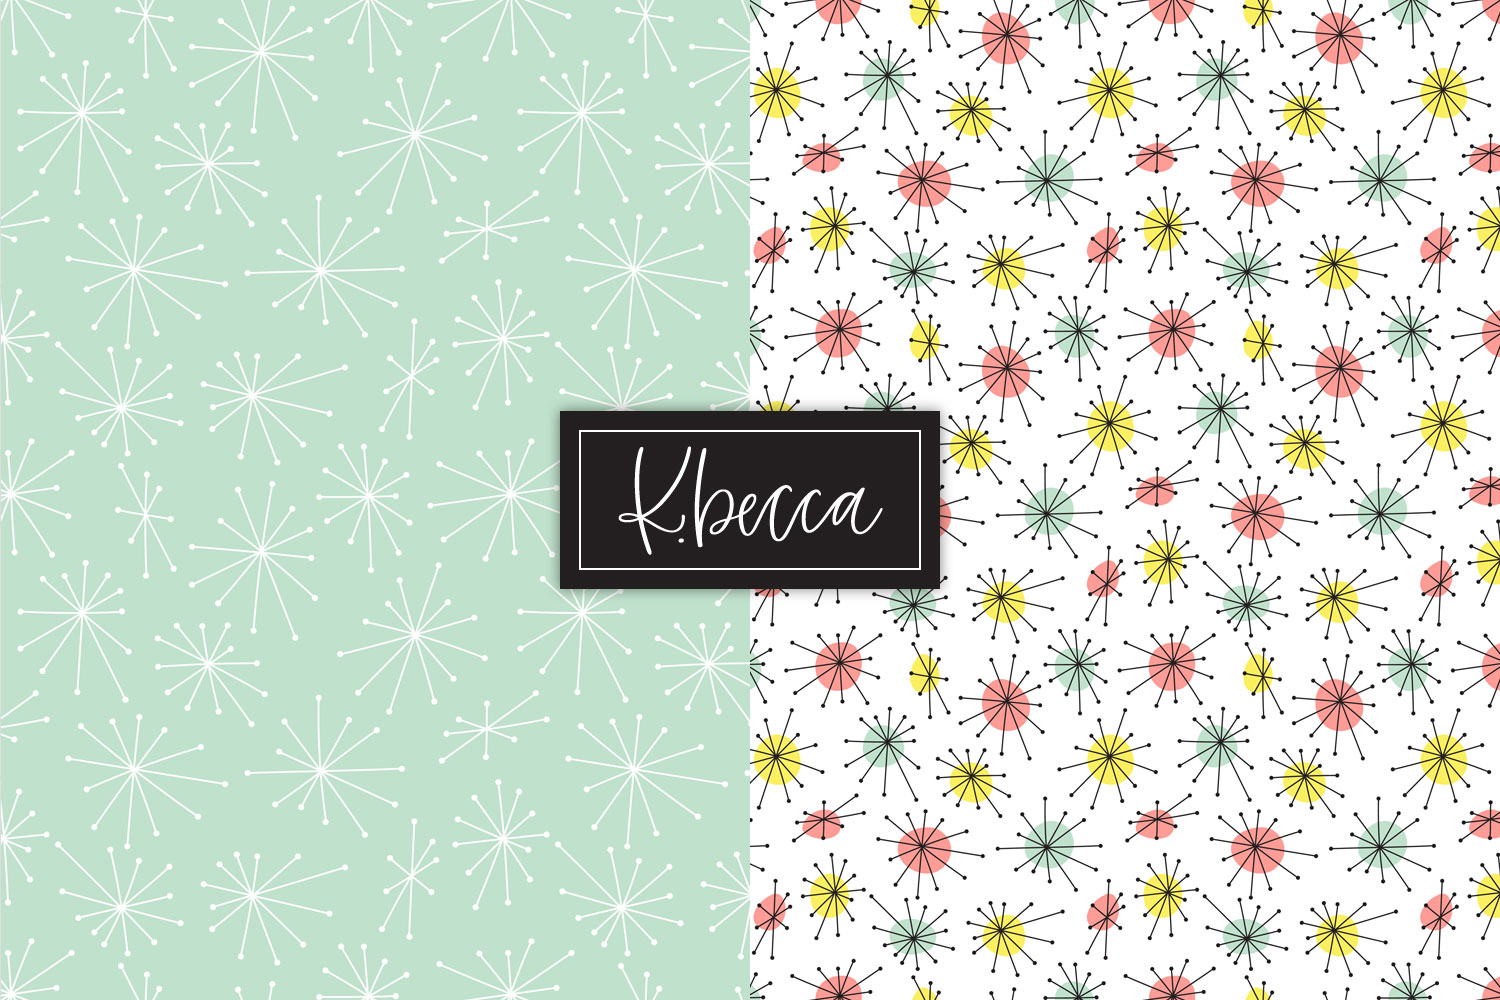 Retro 1950s Background Patterns Seamless example image 6